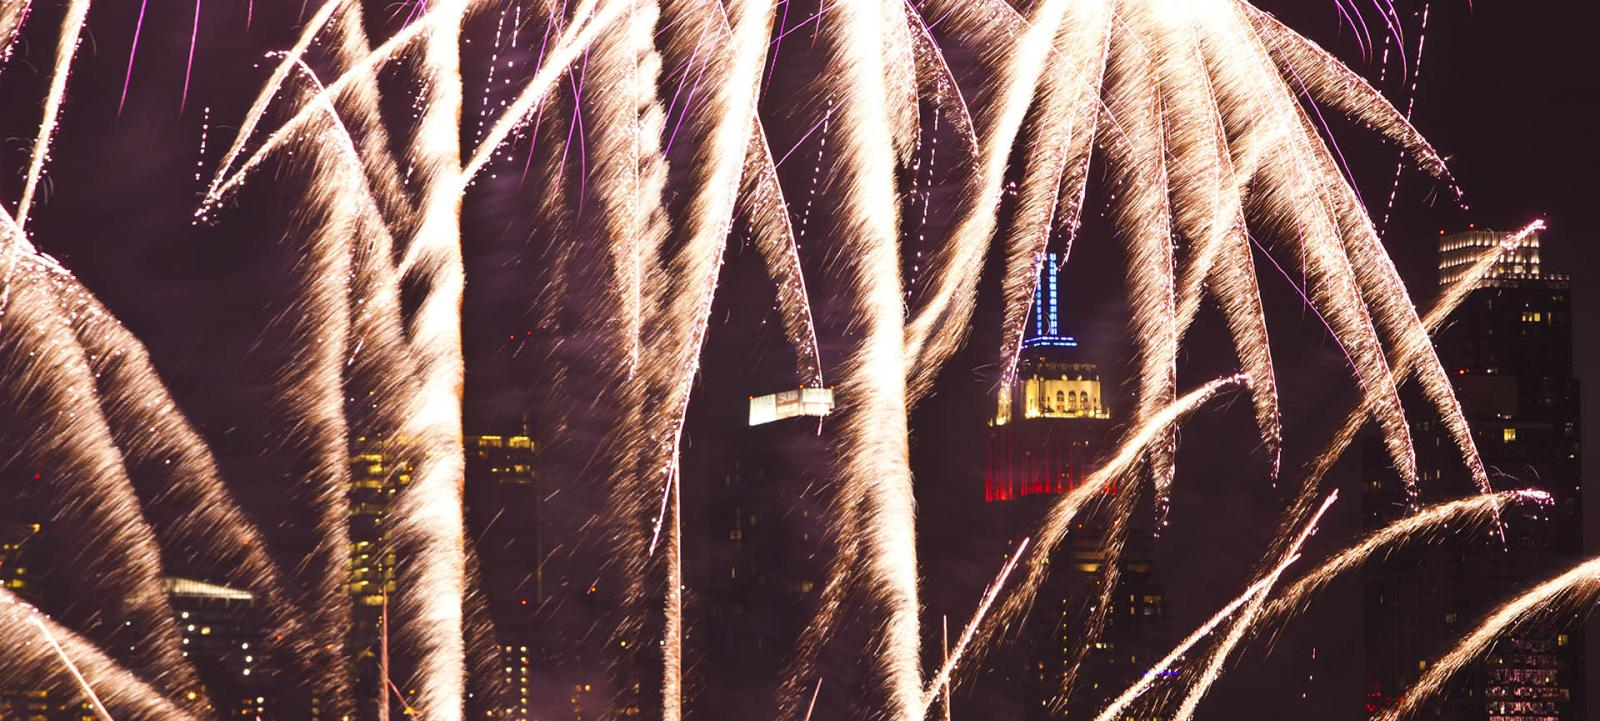 4th of July-Feuerwerks-Bootstour in New York City